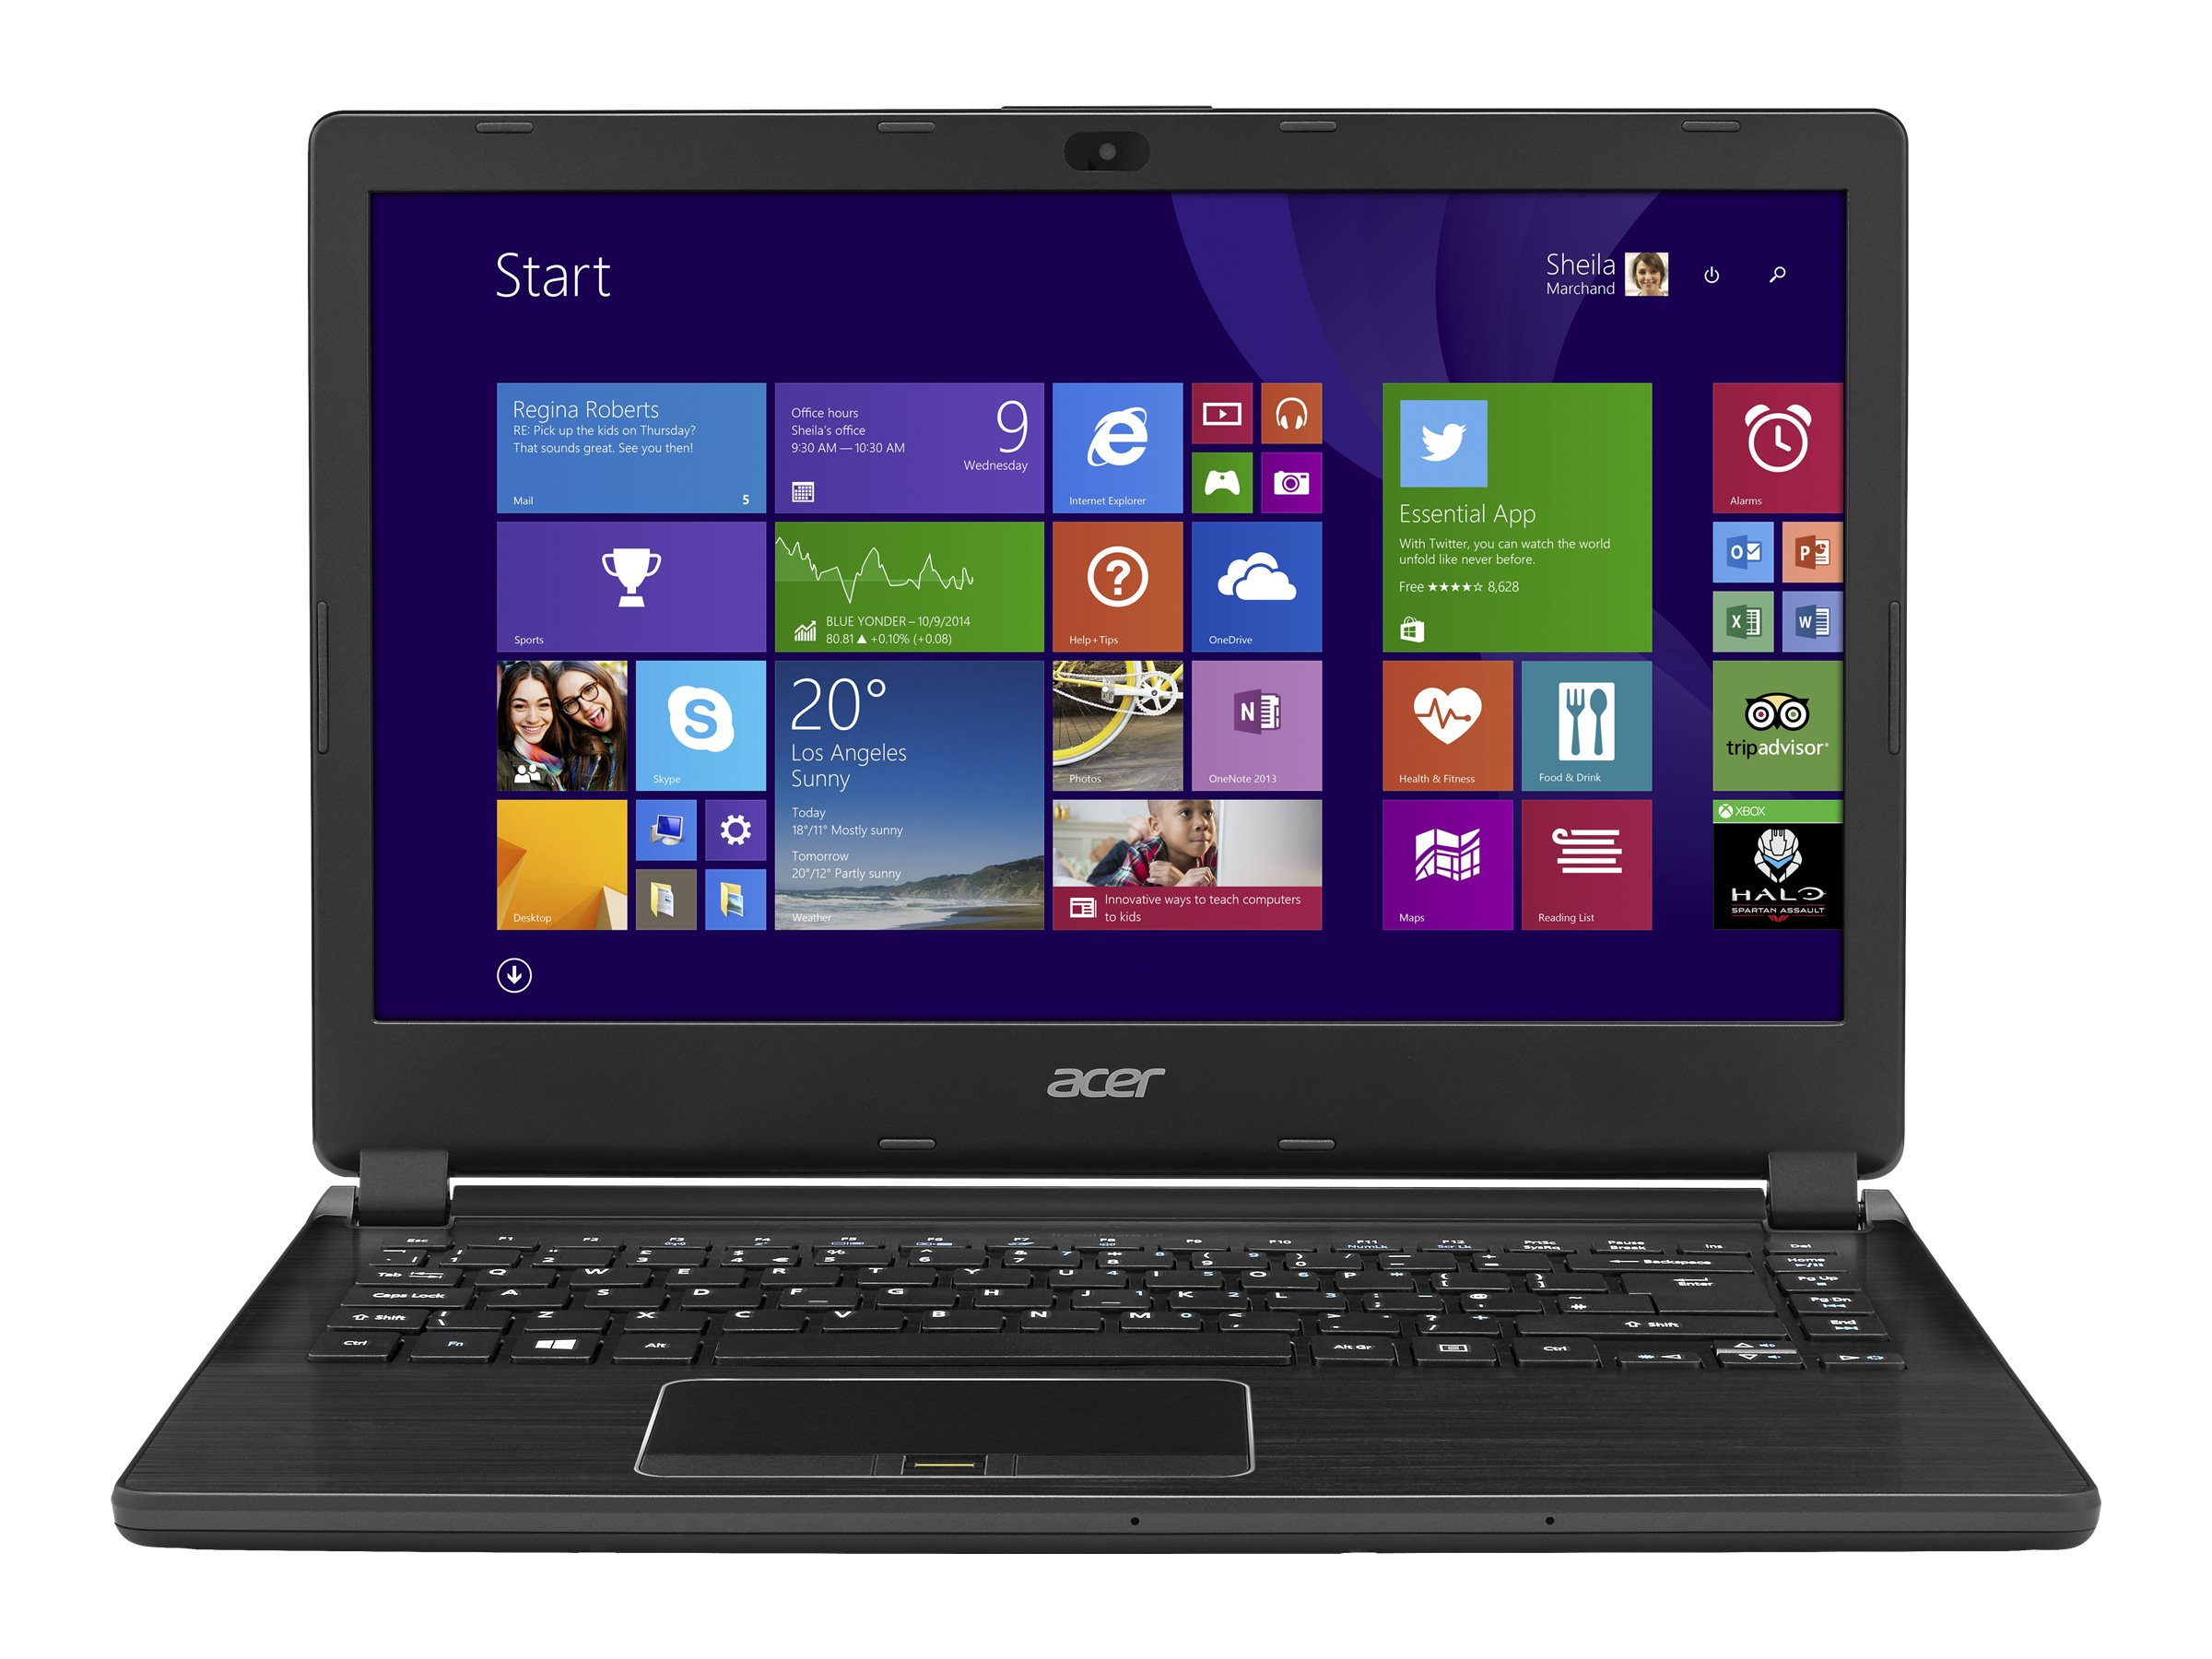 Acer NX.VCEAA.003 Image 2